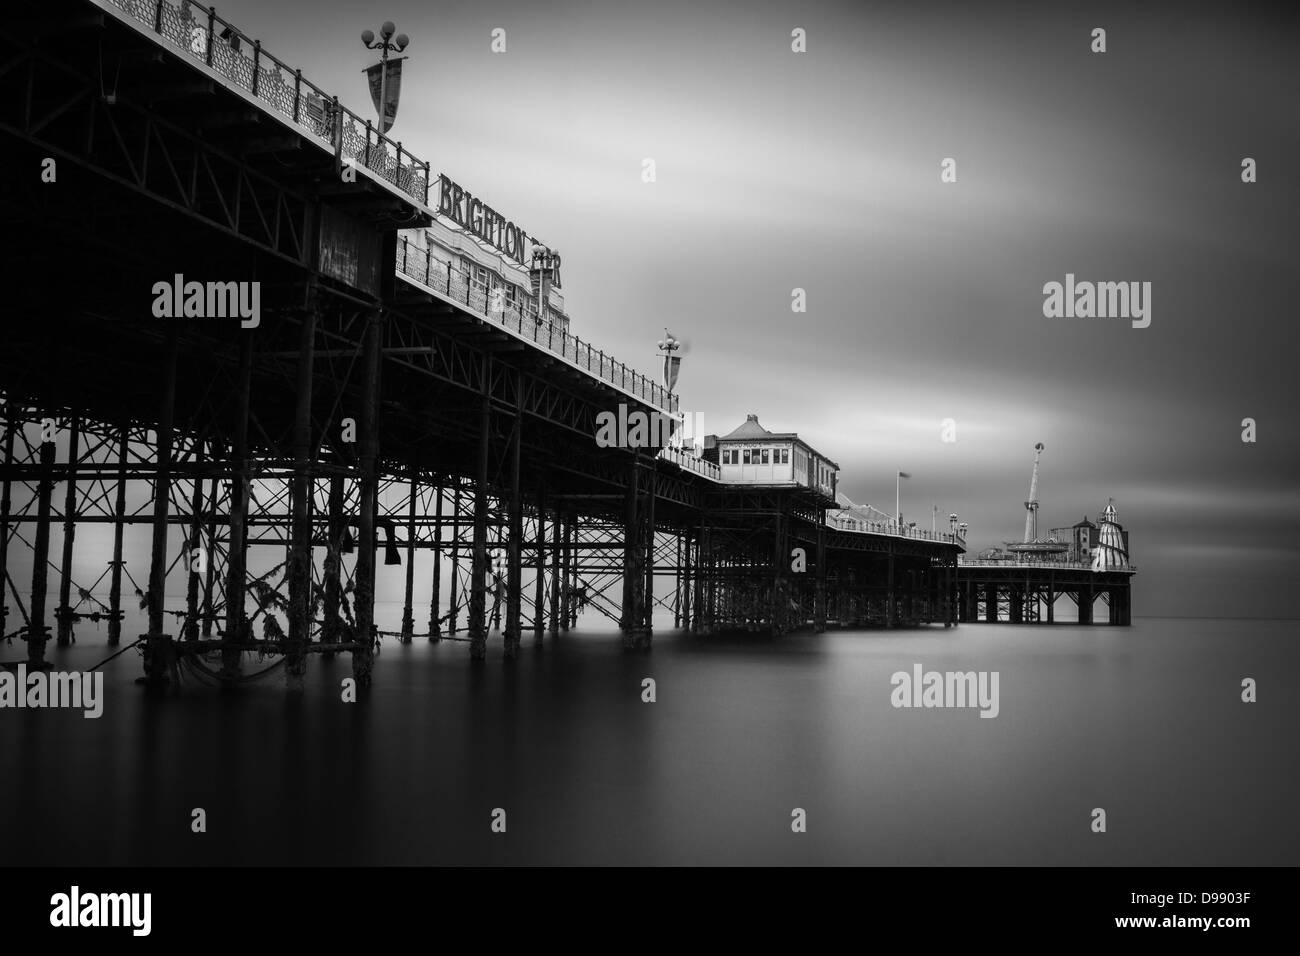 A black and white ND filter shot of Brighton pier, sea front view - Stock Image